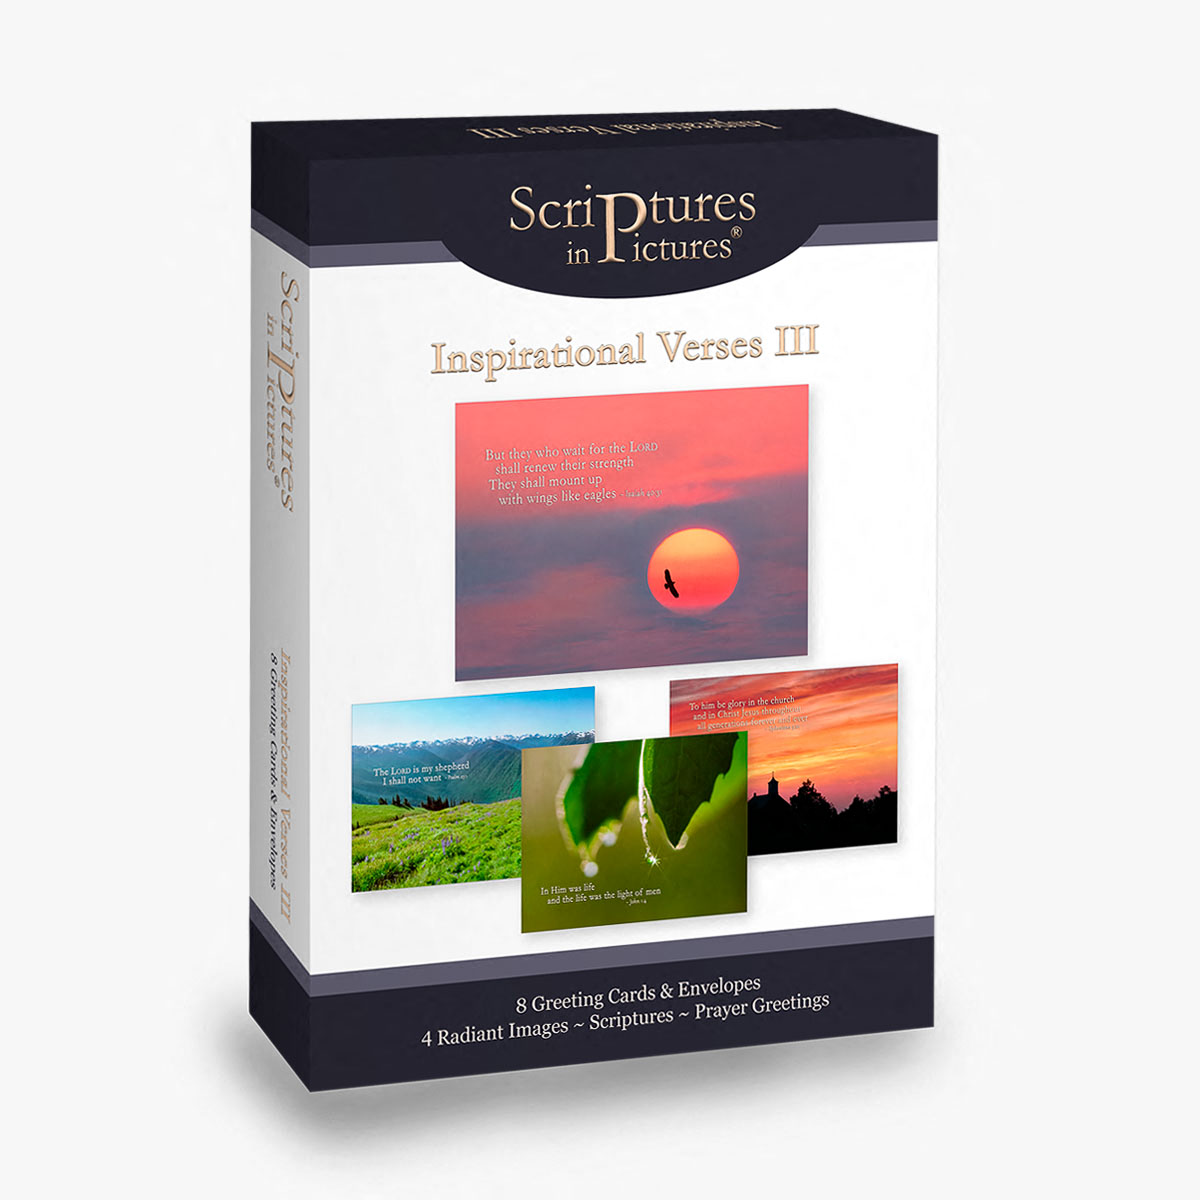 Scriptures in Pictures Inspirational Verses III Greeting Cards